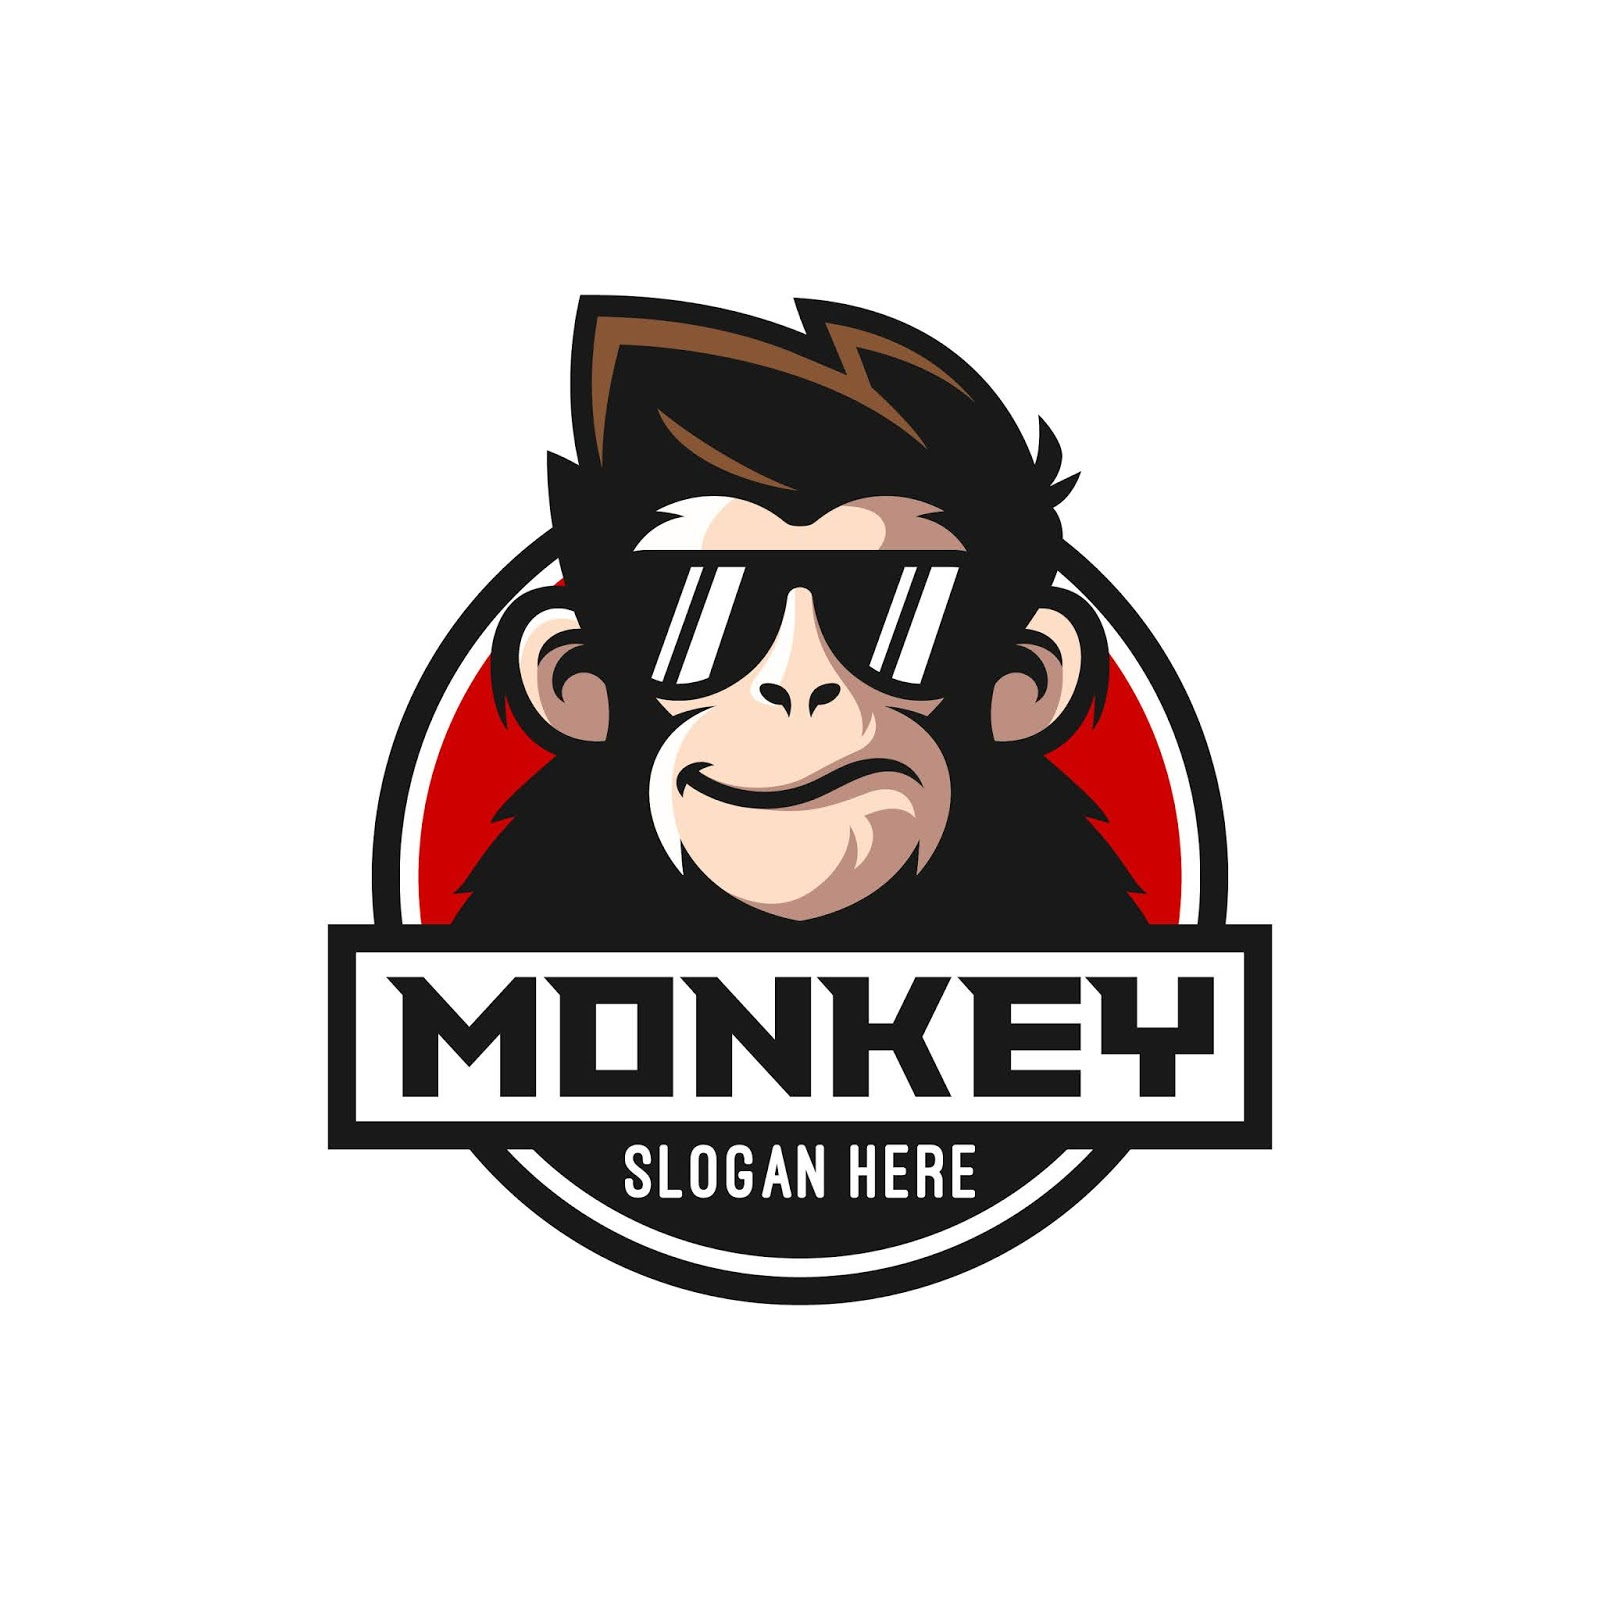 Cool Monkey Logo Design Free Download Vector CDR, AI, EPS and PNG Formats